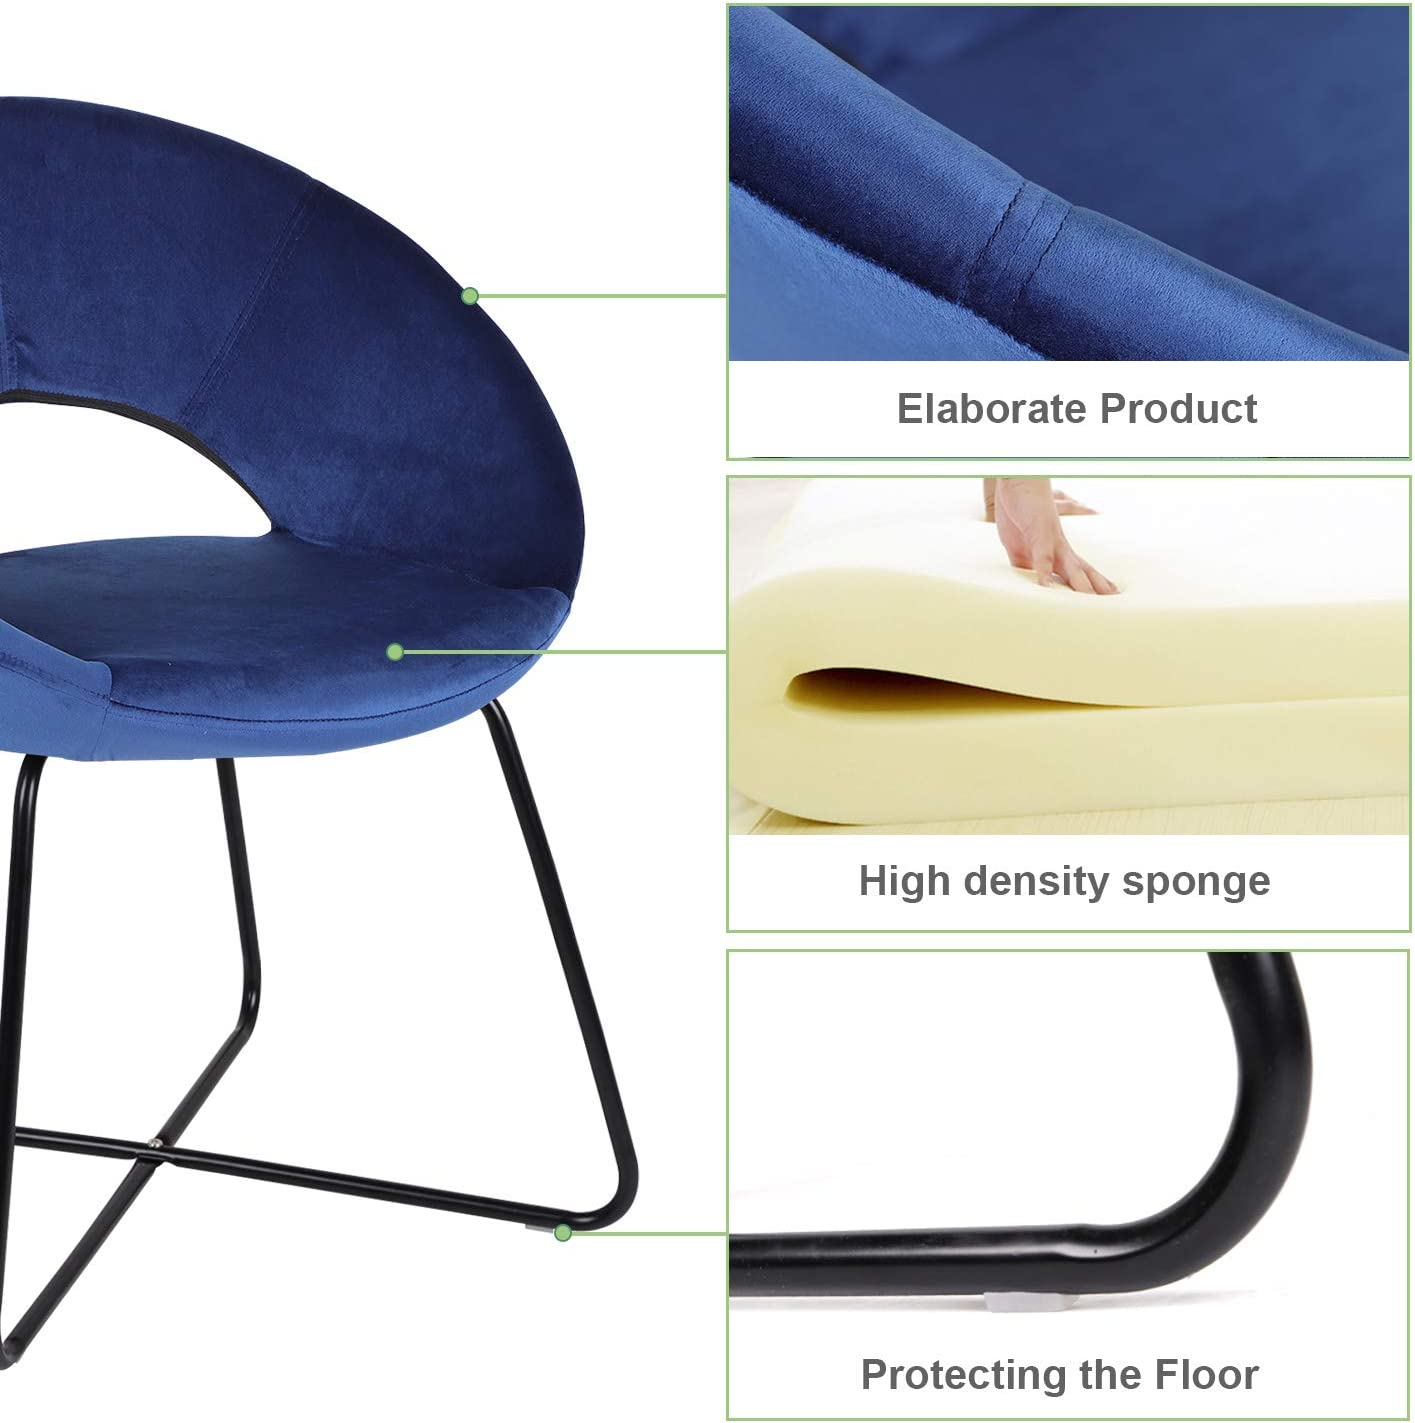 Jooli H Dining Chairs Velvet Armchairs, Soft Seat and Back Support Office Reception Chair with Metal Legs for Living Room Bedroom Kitchen Blue